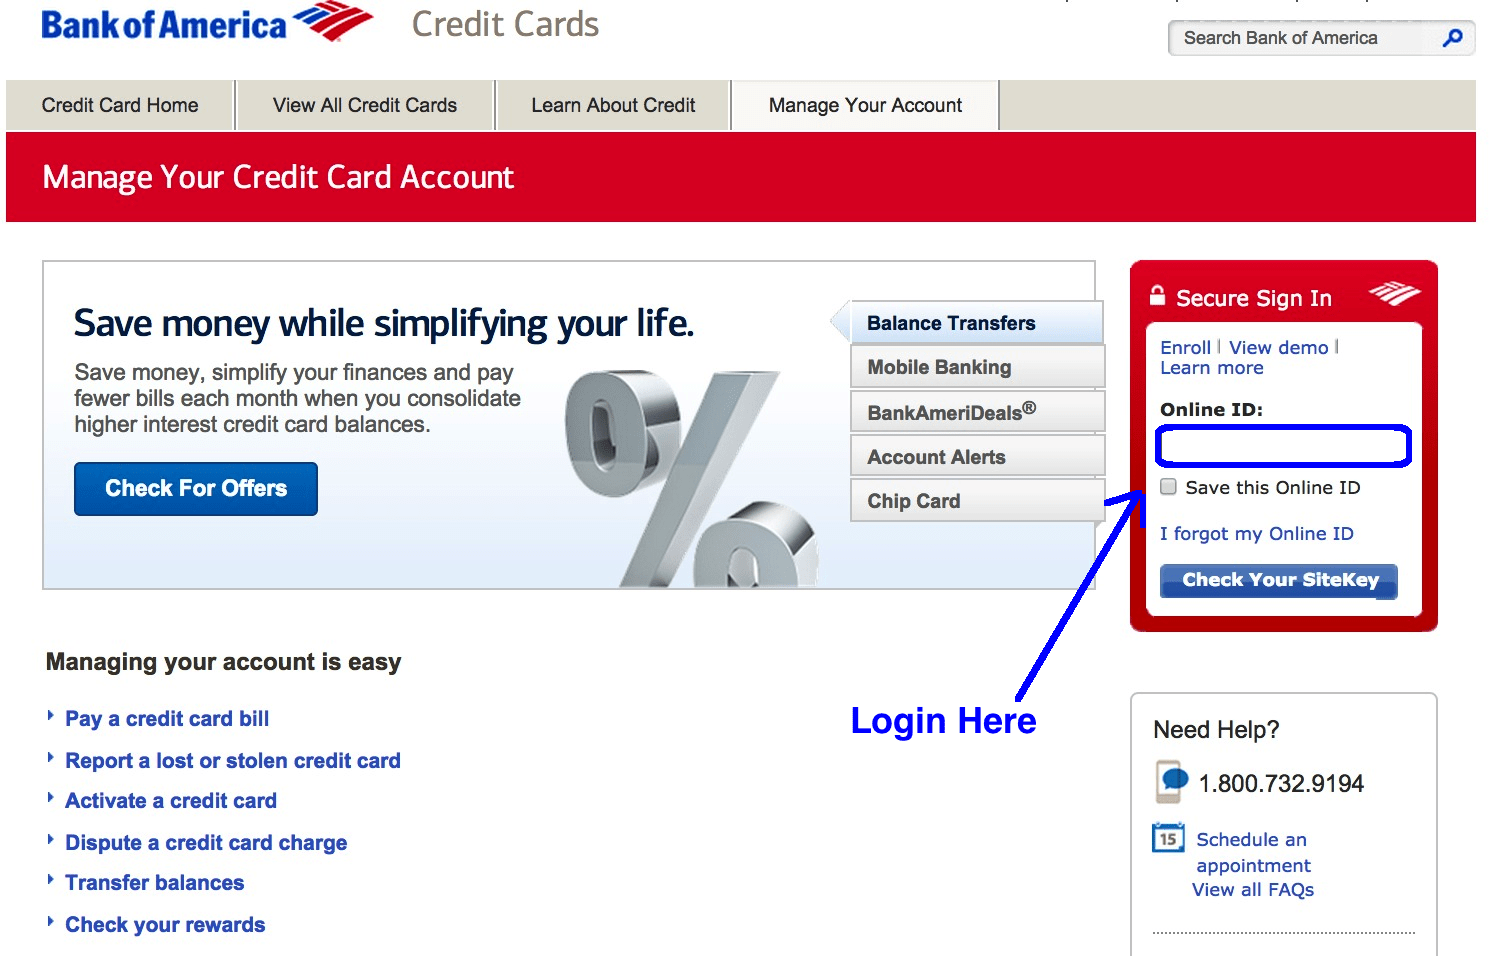 Bank of America credit card login page